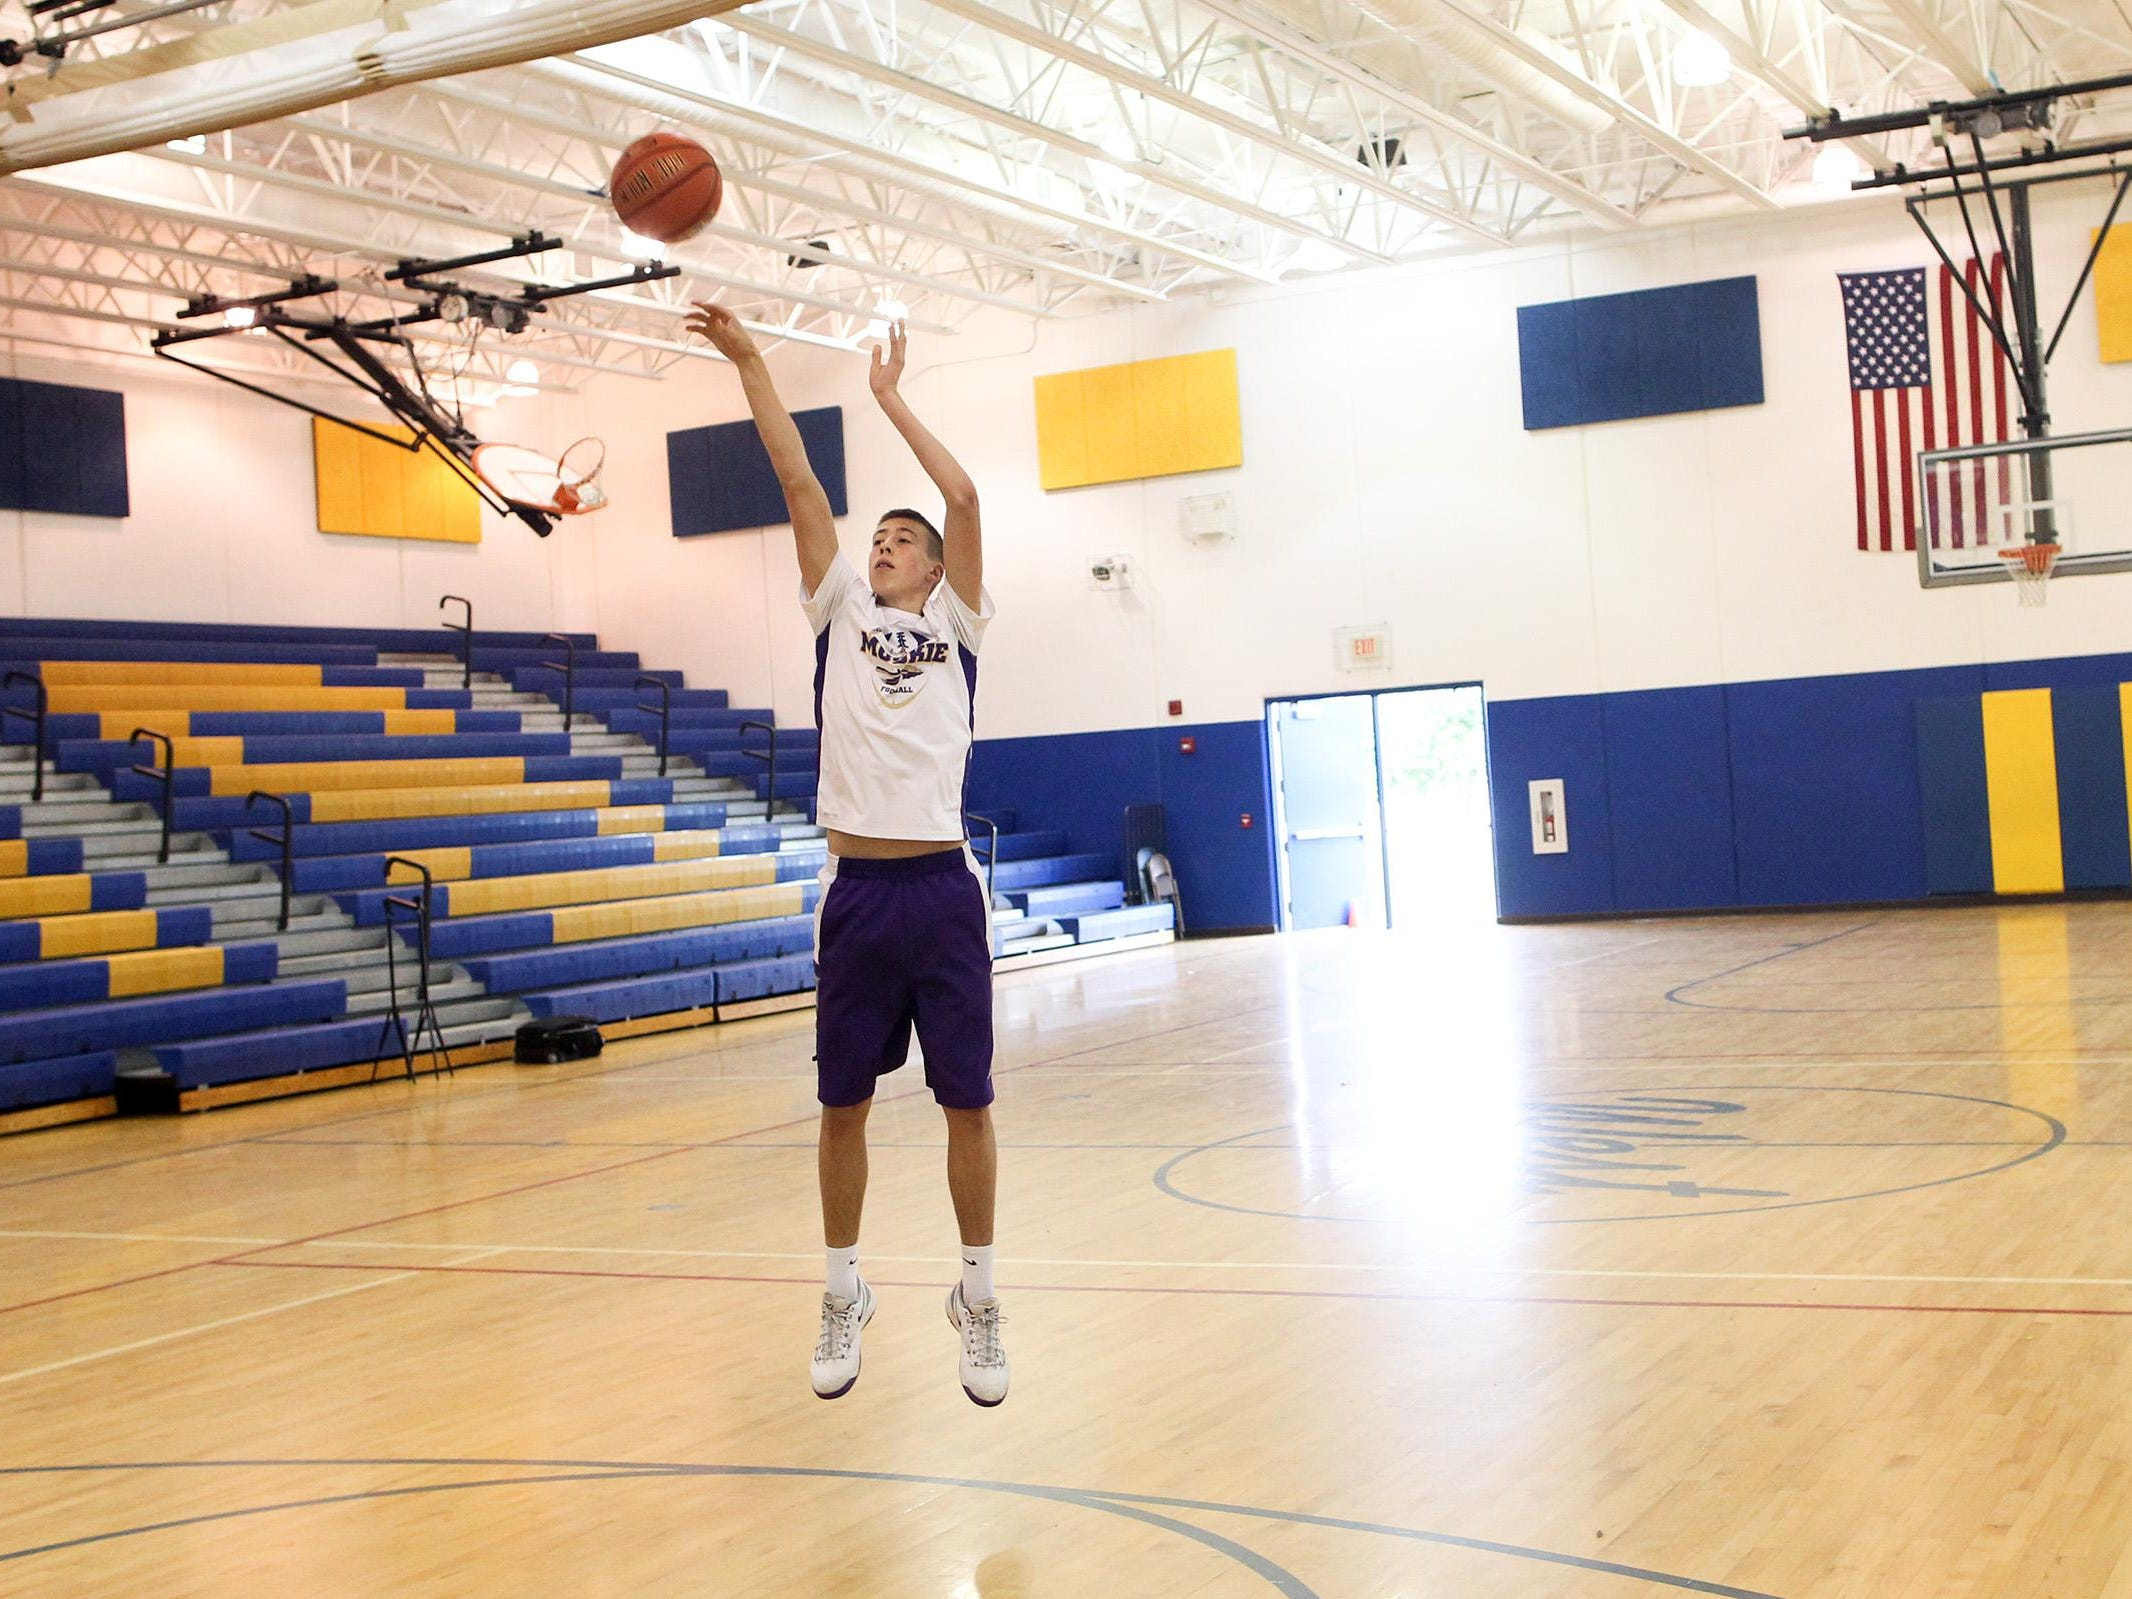 Muscatine's Joe Wieskamp shoots around the West Middle School gym in Muscatine on July 2. The sophomore-to-be averaged 18.6 points and 6.1 rebounds as a freshman last season.